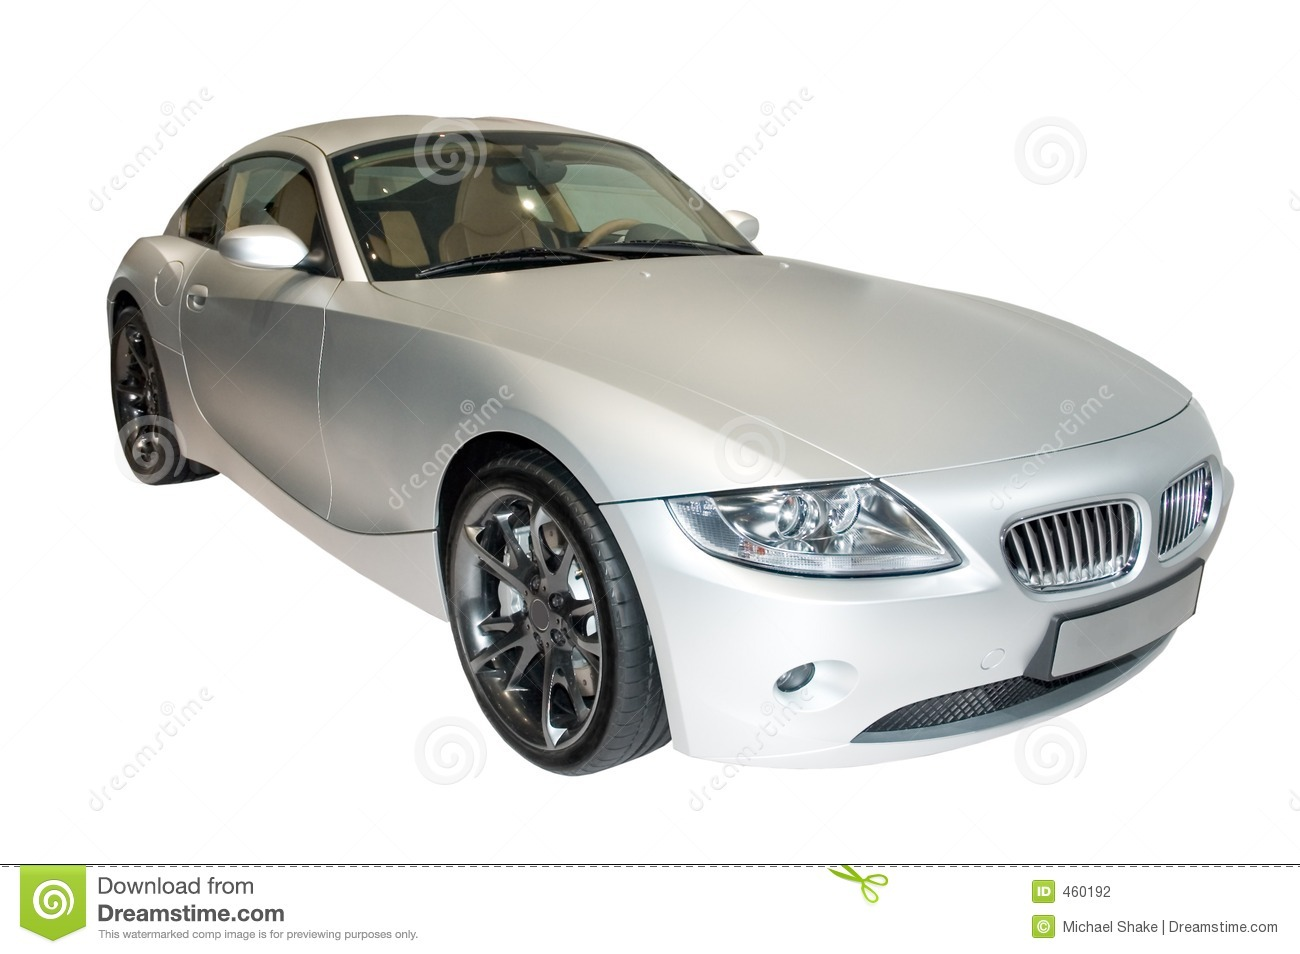 voiture de sport de bmw z4 photographie stock image 460192. Black Bedroom Furniture Sets. Home Design Ideas